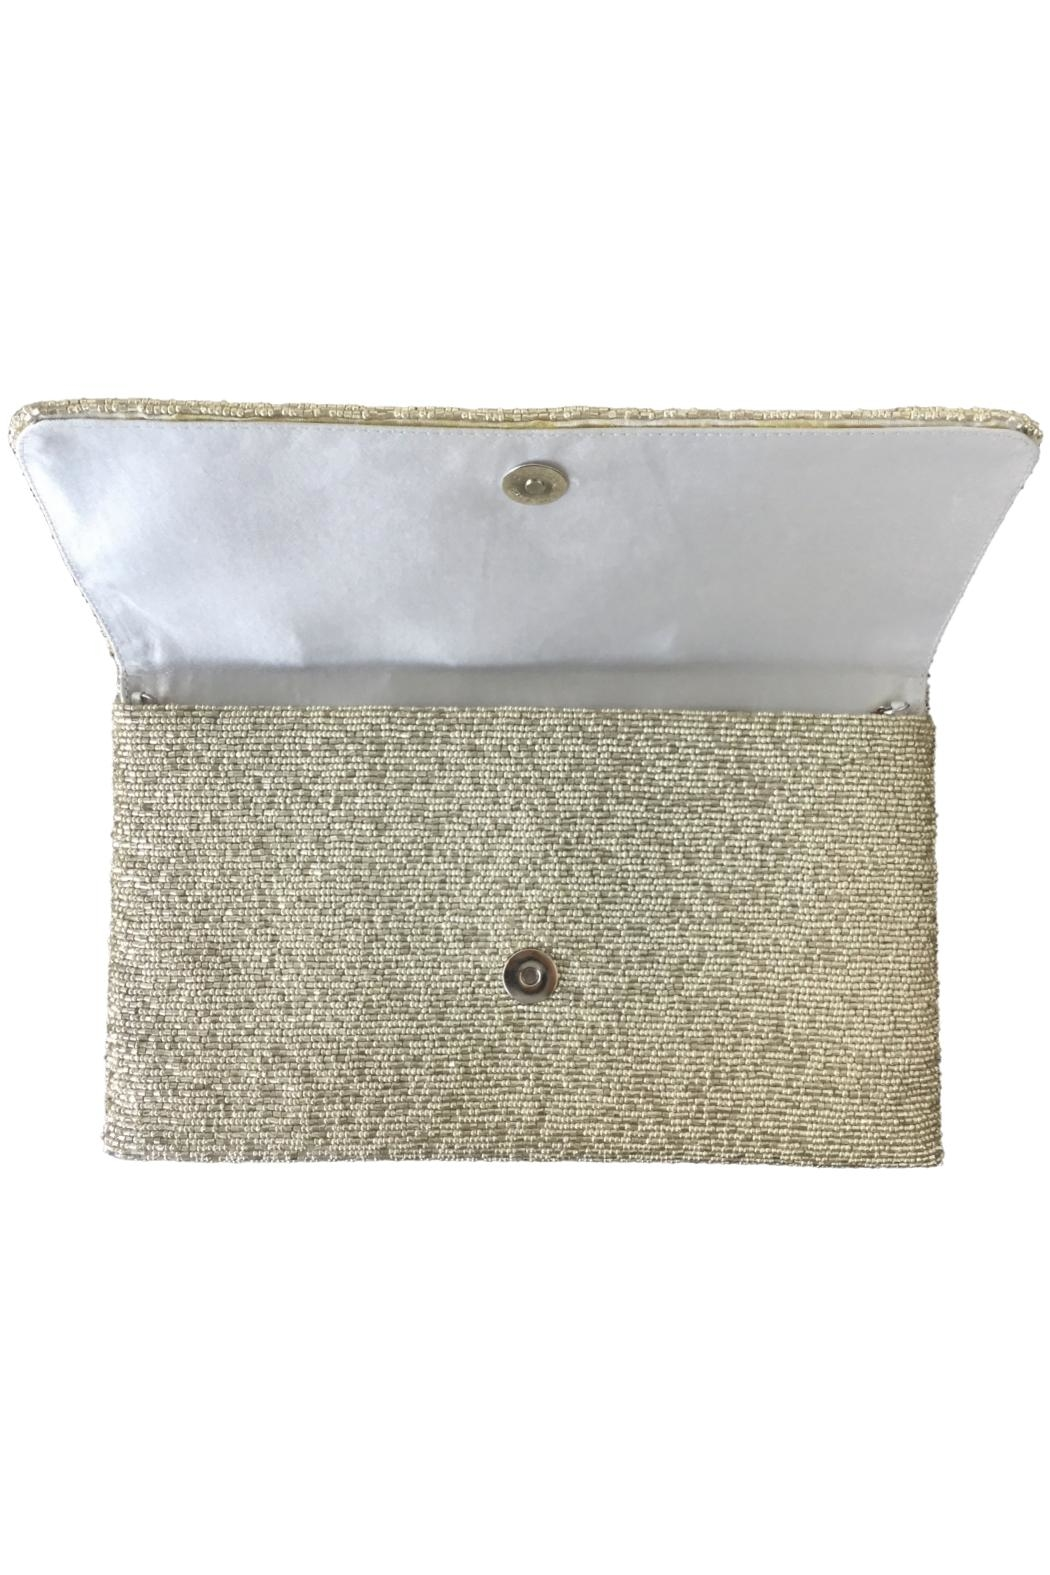 Scarborough Fair Silver Beaded Bag - Front Full Image